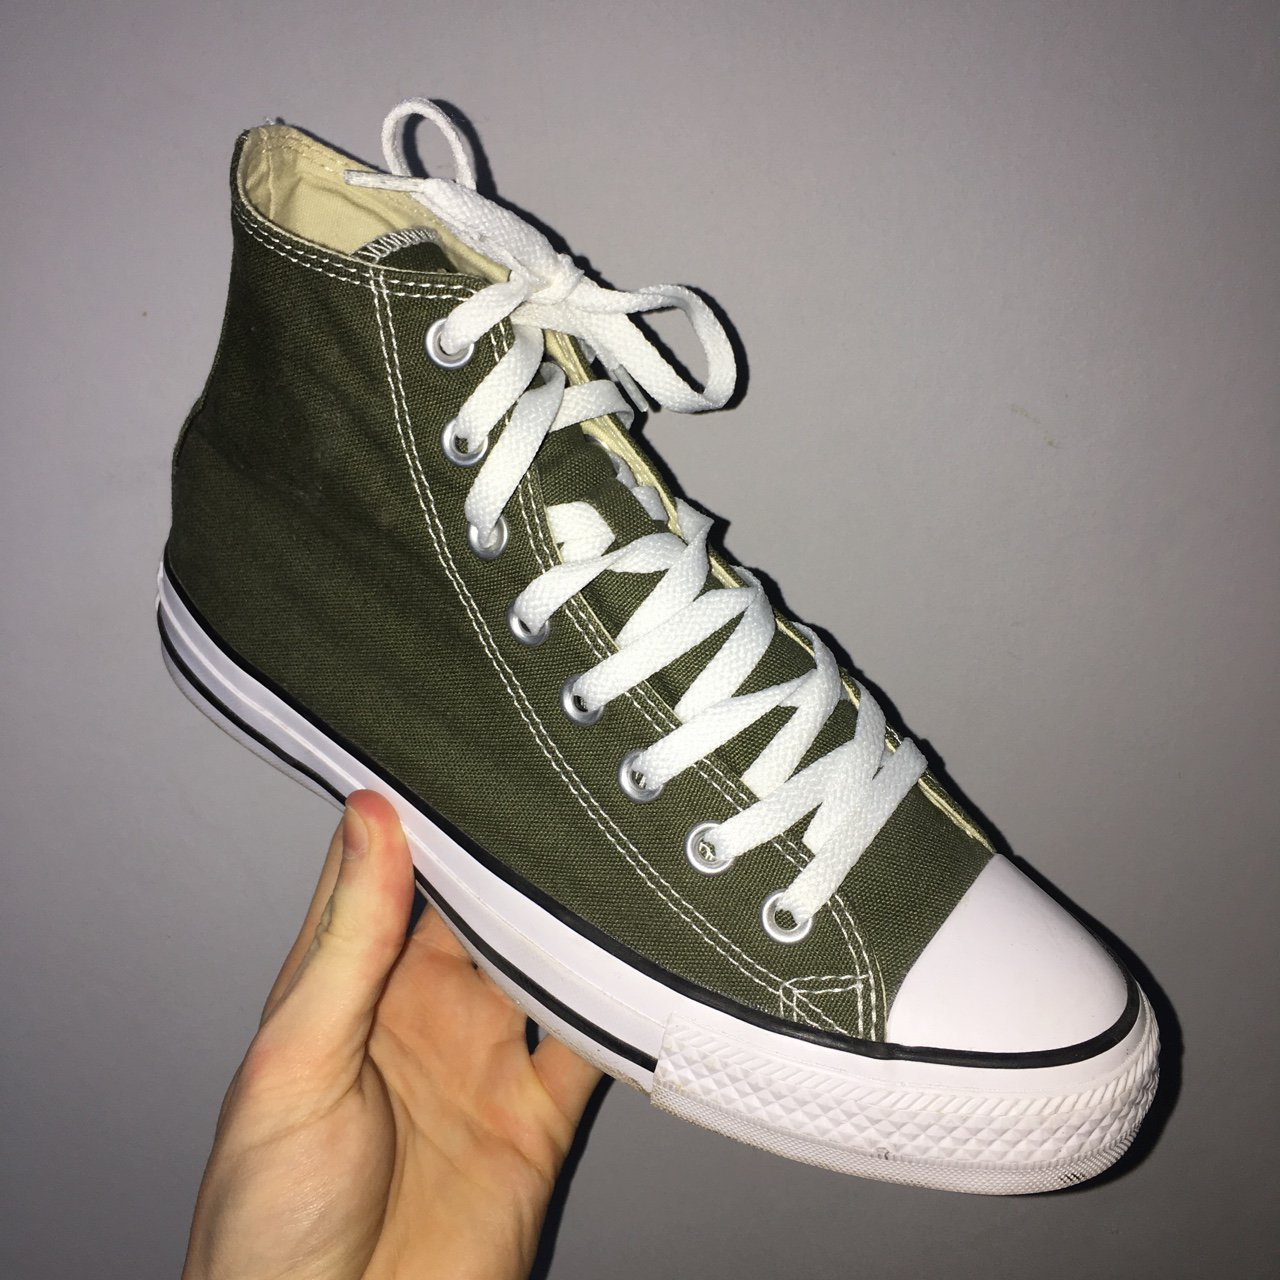 Khaki green converse size 7. Worn once. - Depop 2dded5f28